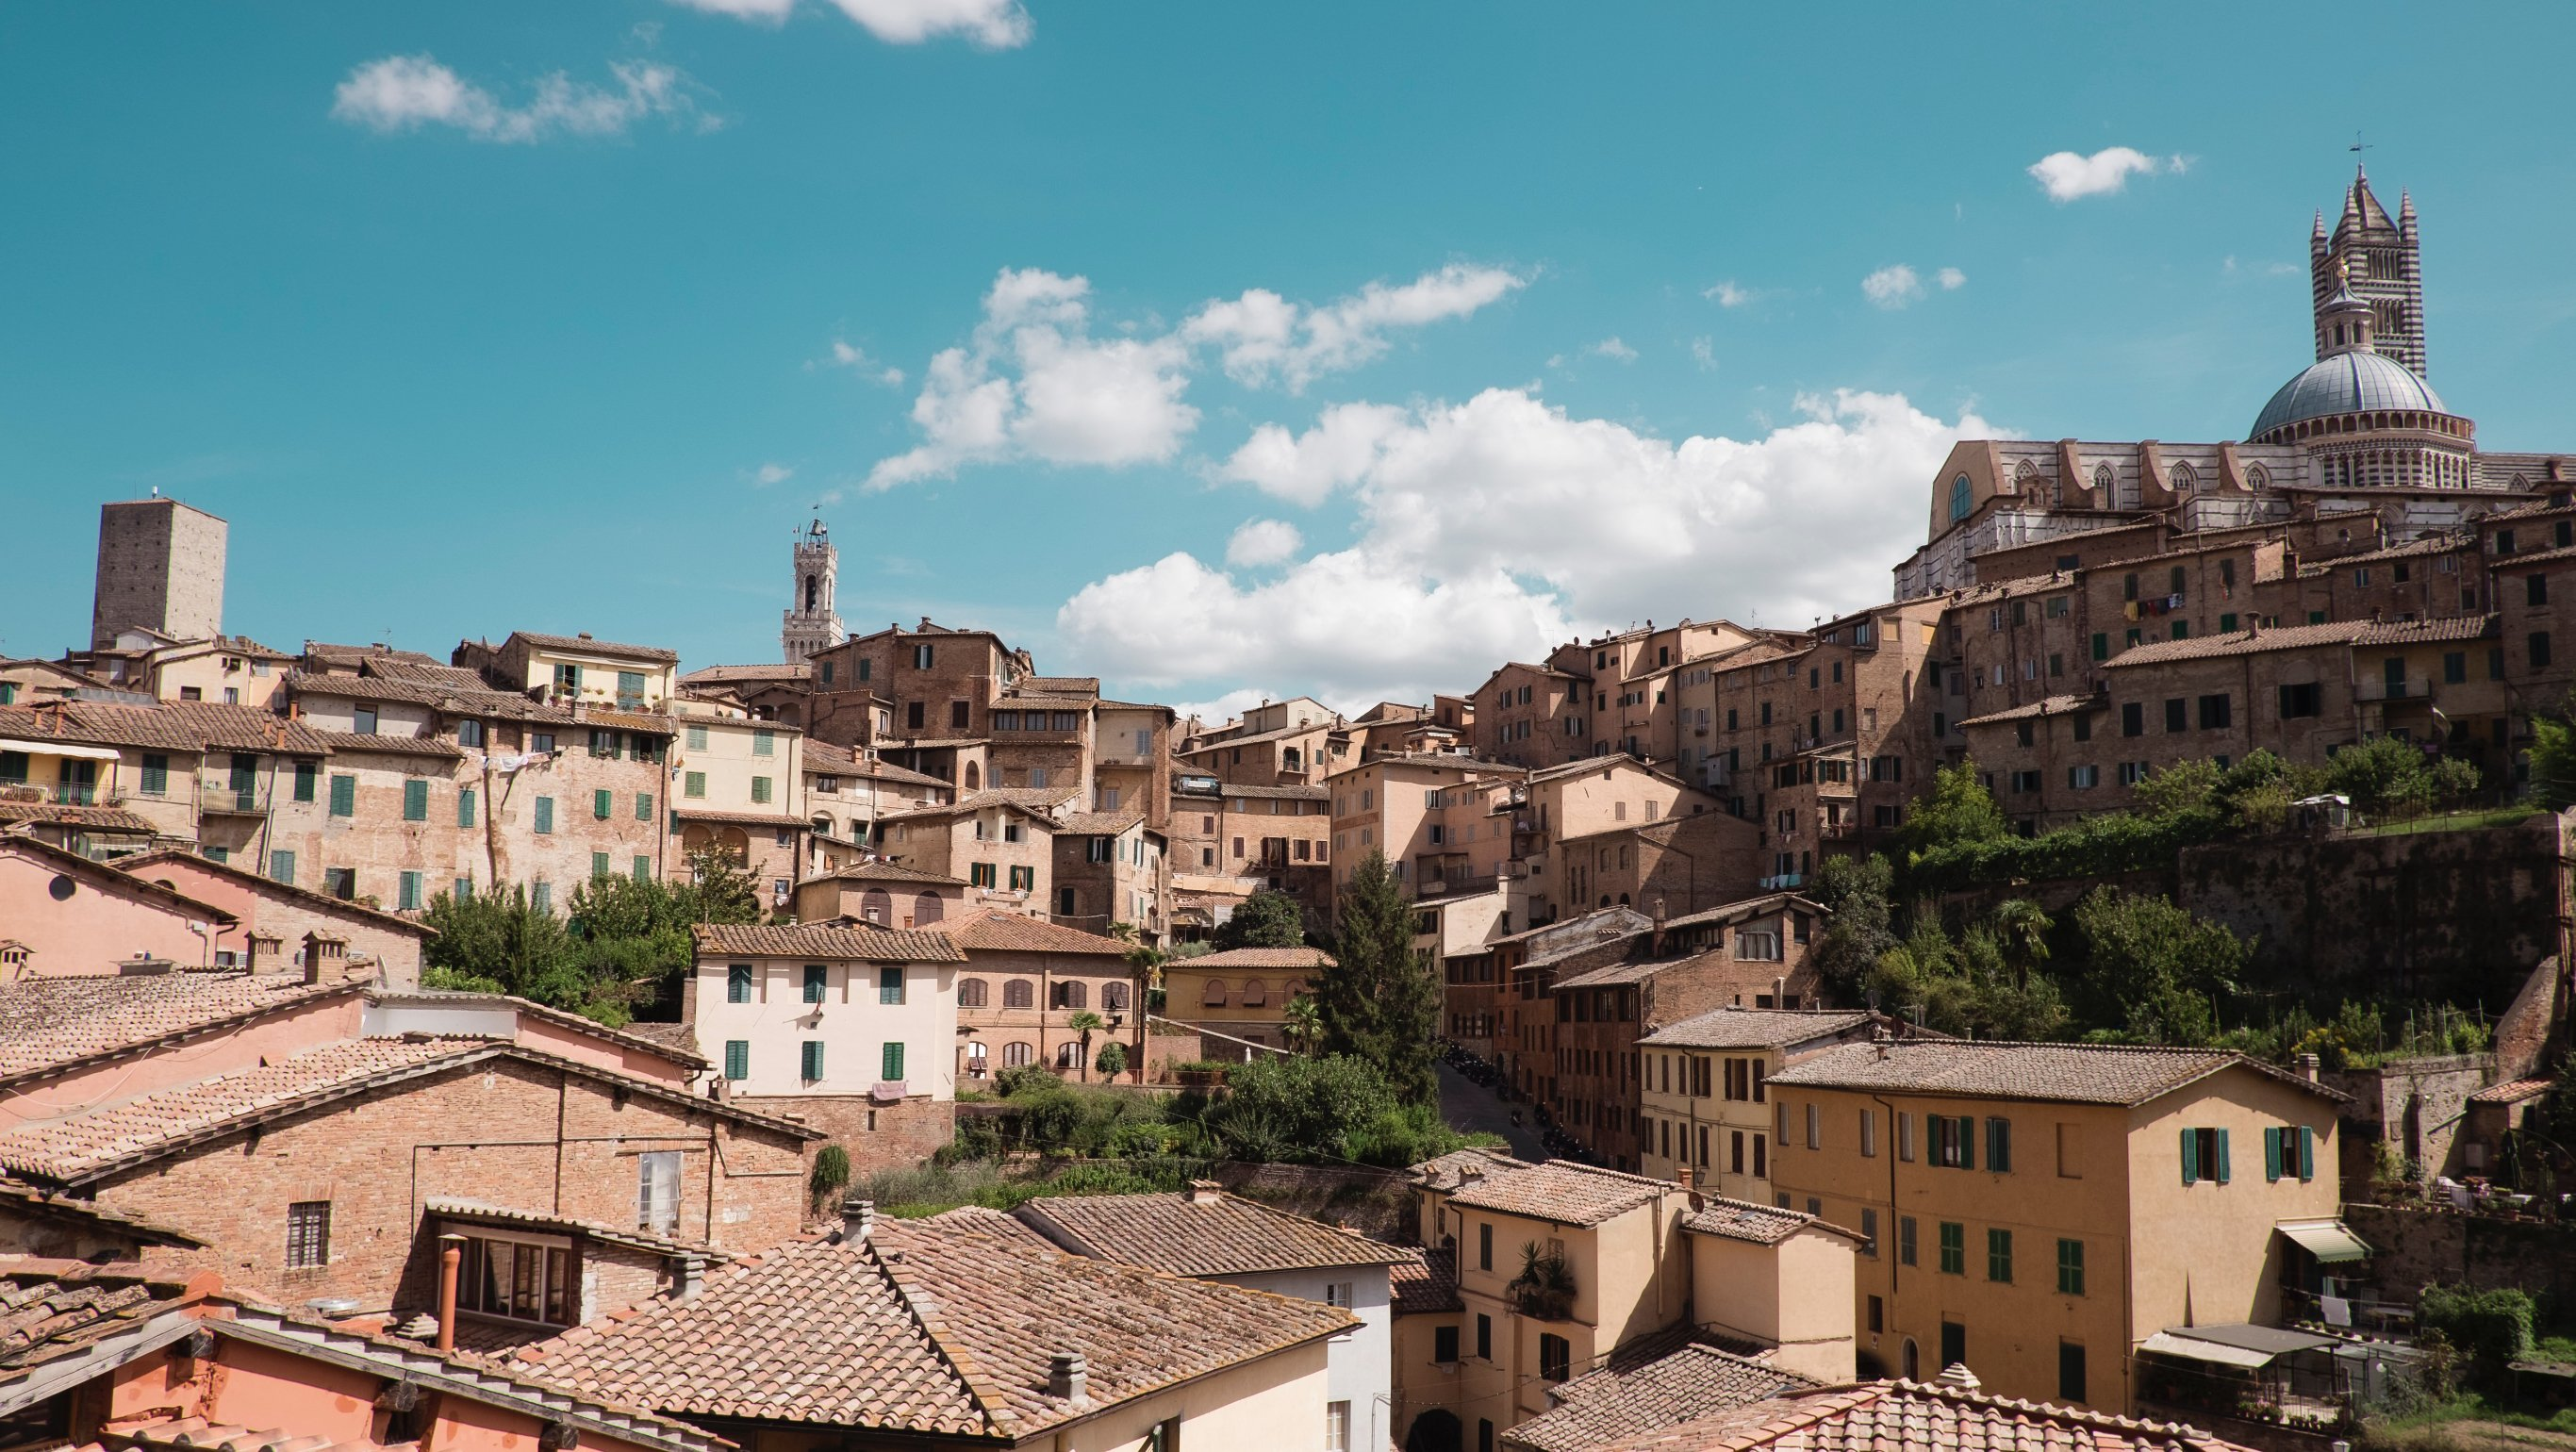 8-Day Slow Tour of Siena - Italy Itinerary